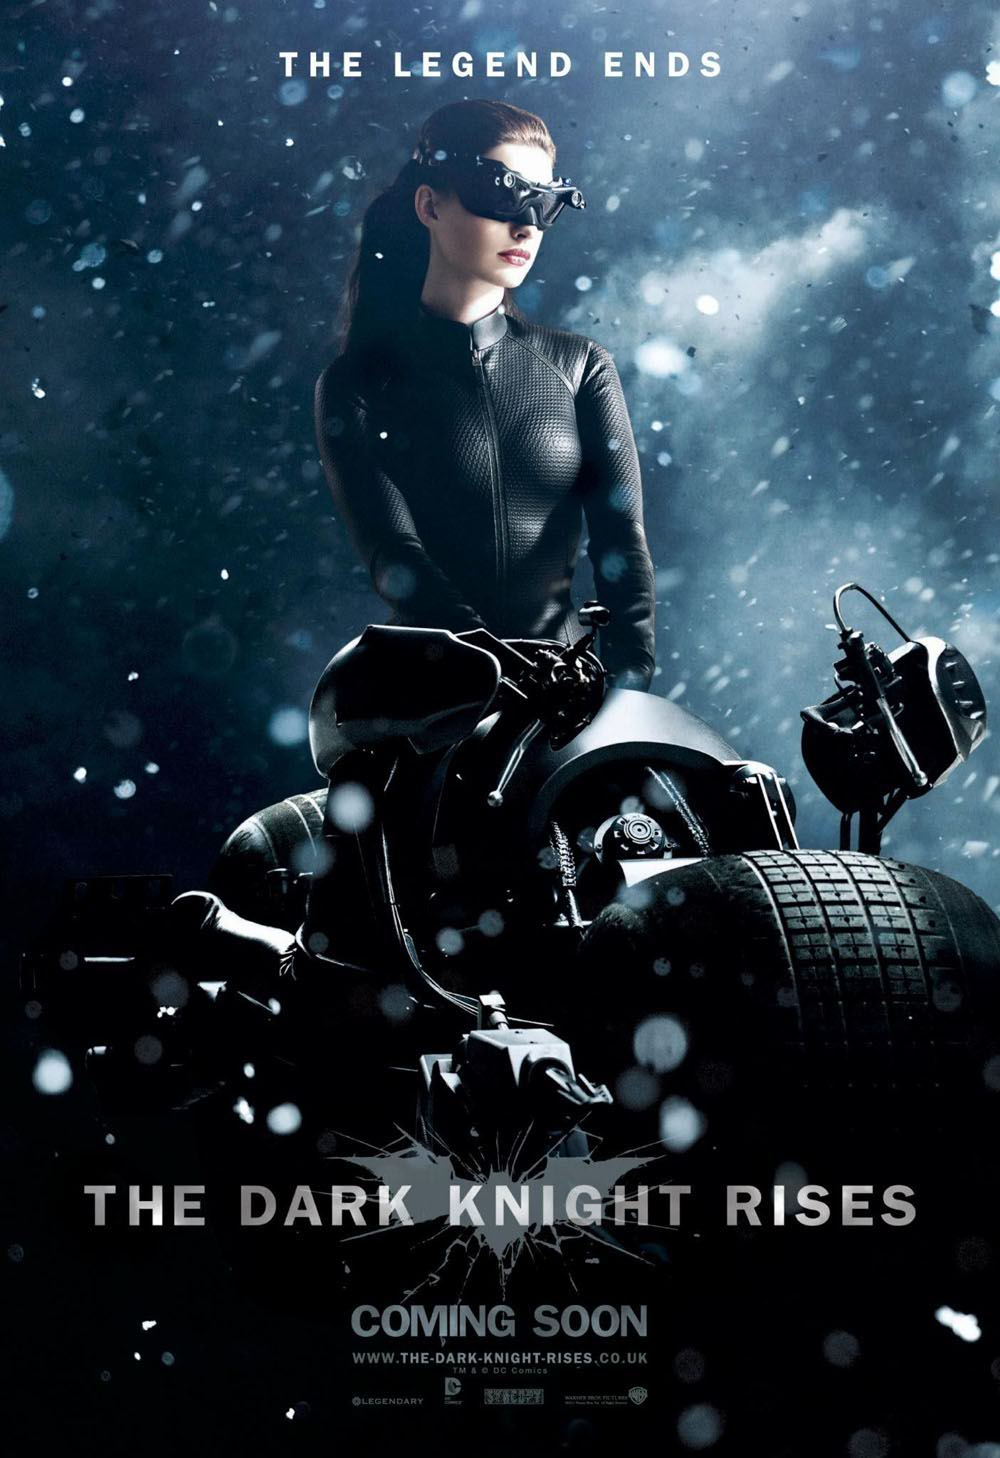 http://worldwidewalburg.files.wordpress.com/2012/05/anne-hathaway-catwoman-rises-02.jpg